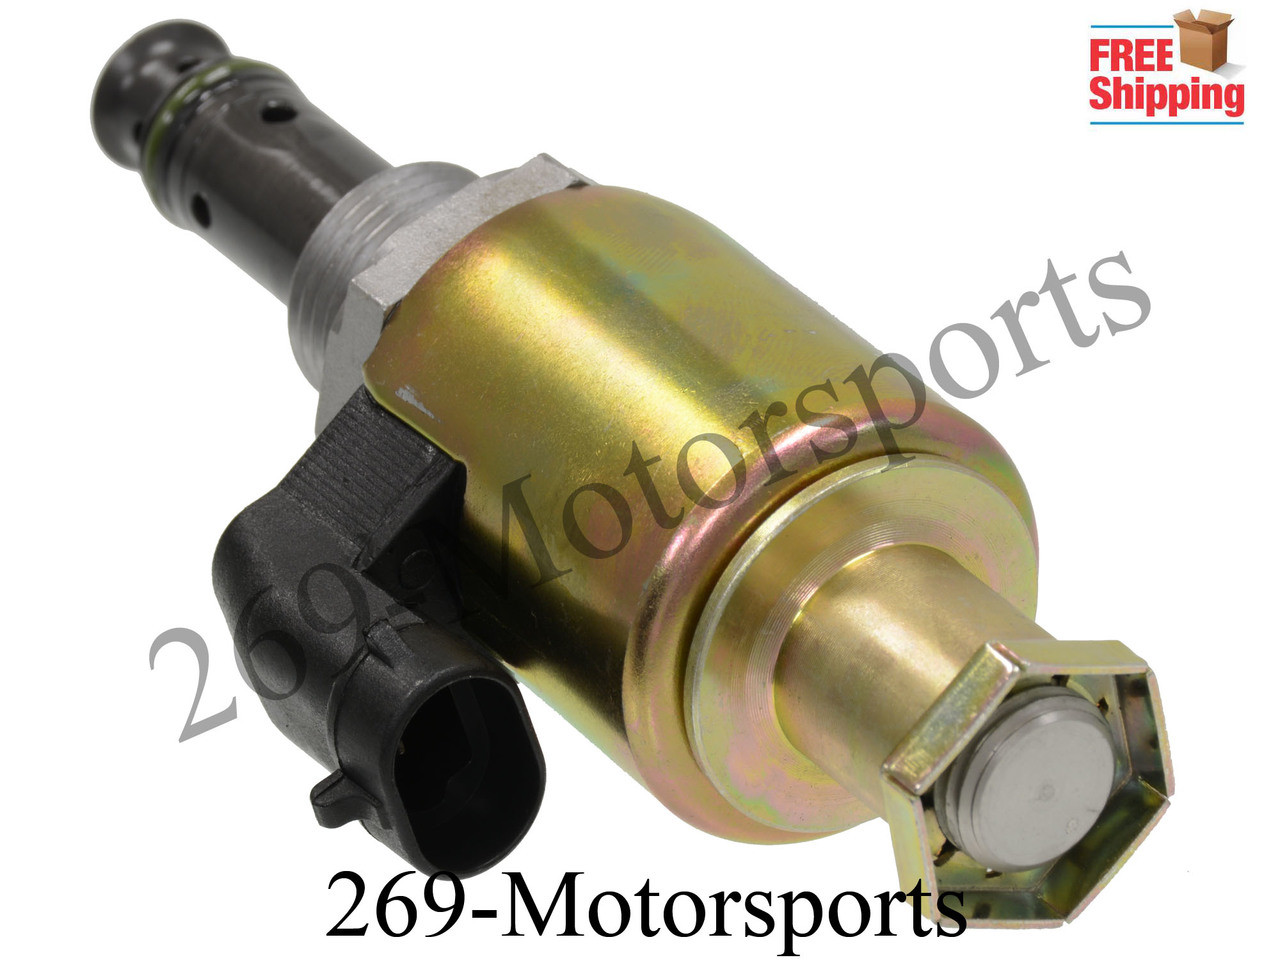 For Ford F-250 F-350 Diesel IPR Valve 7.3L Fuel Injection Pressure Regulator